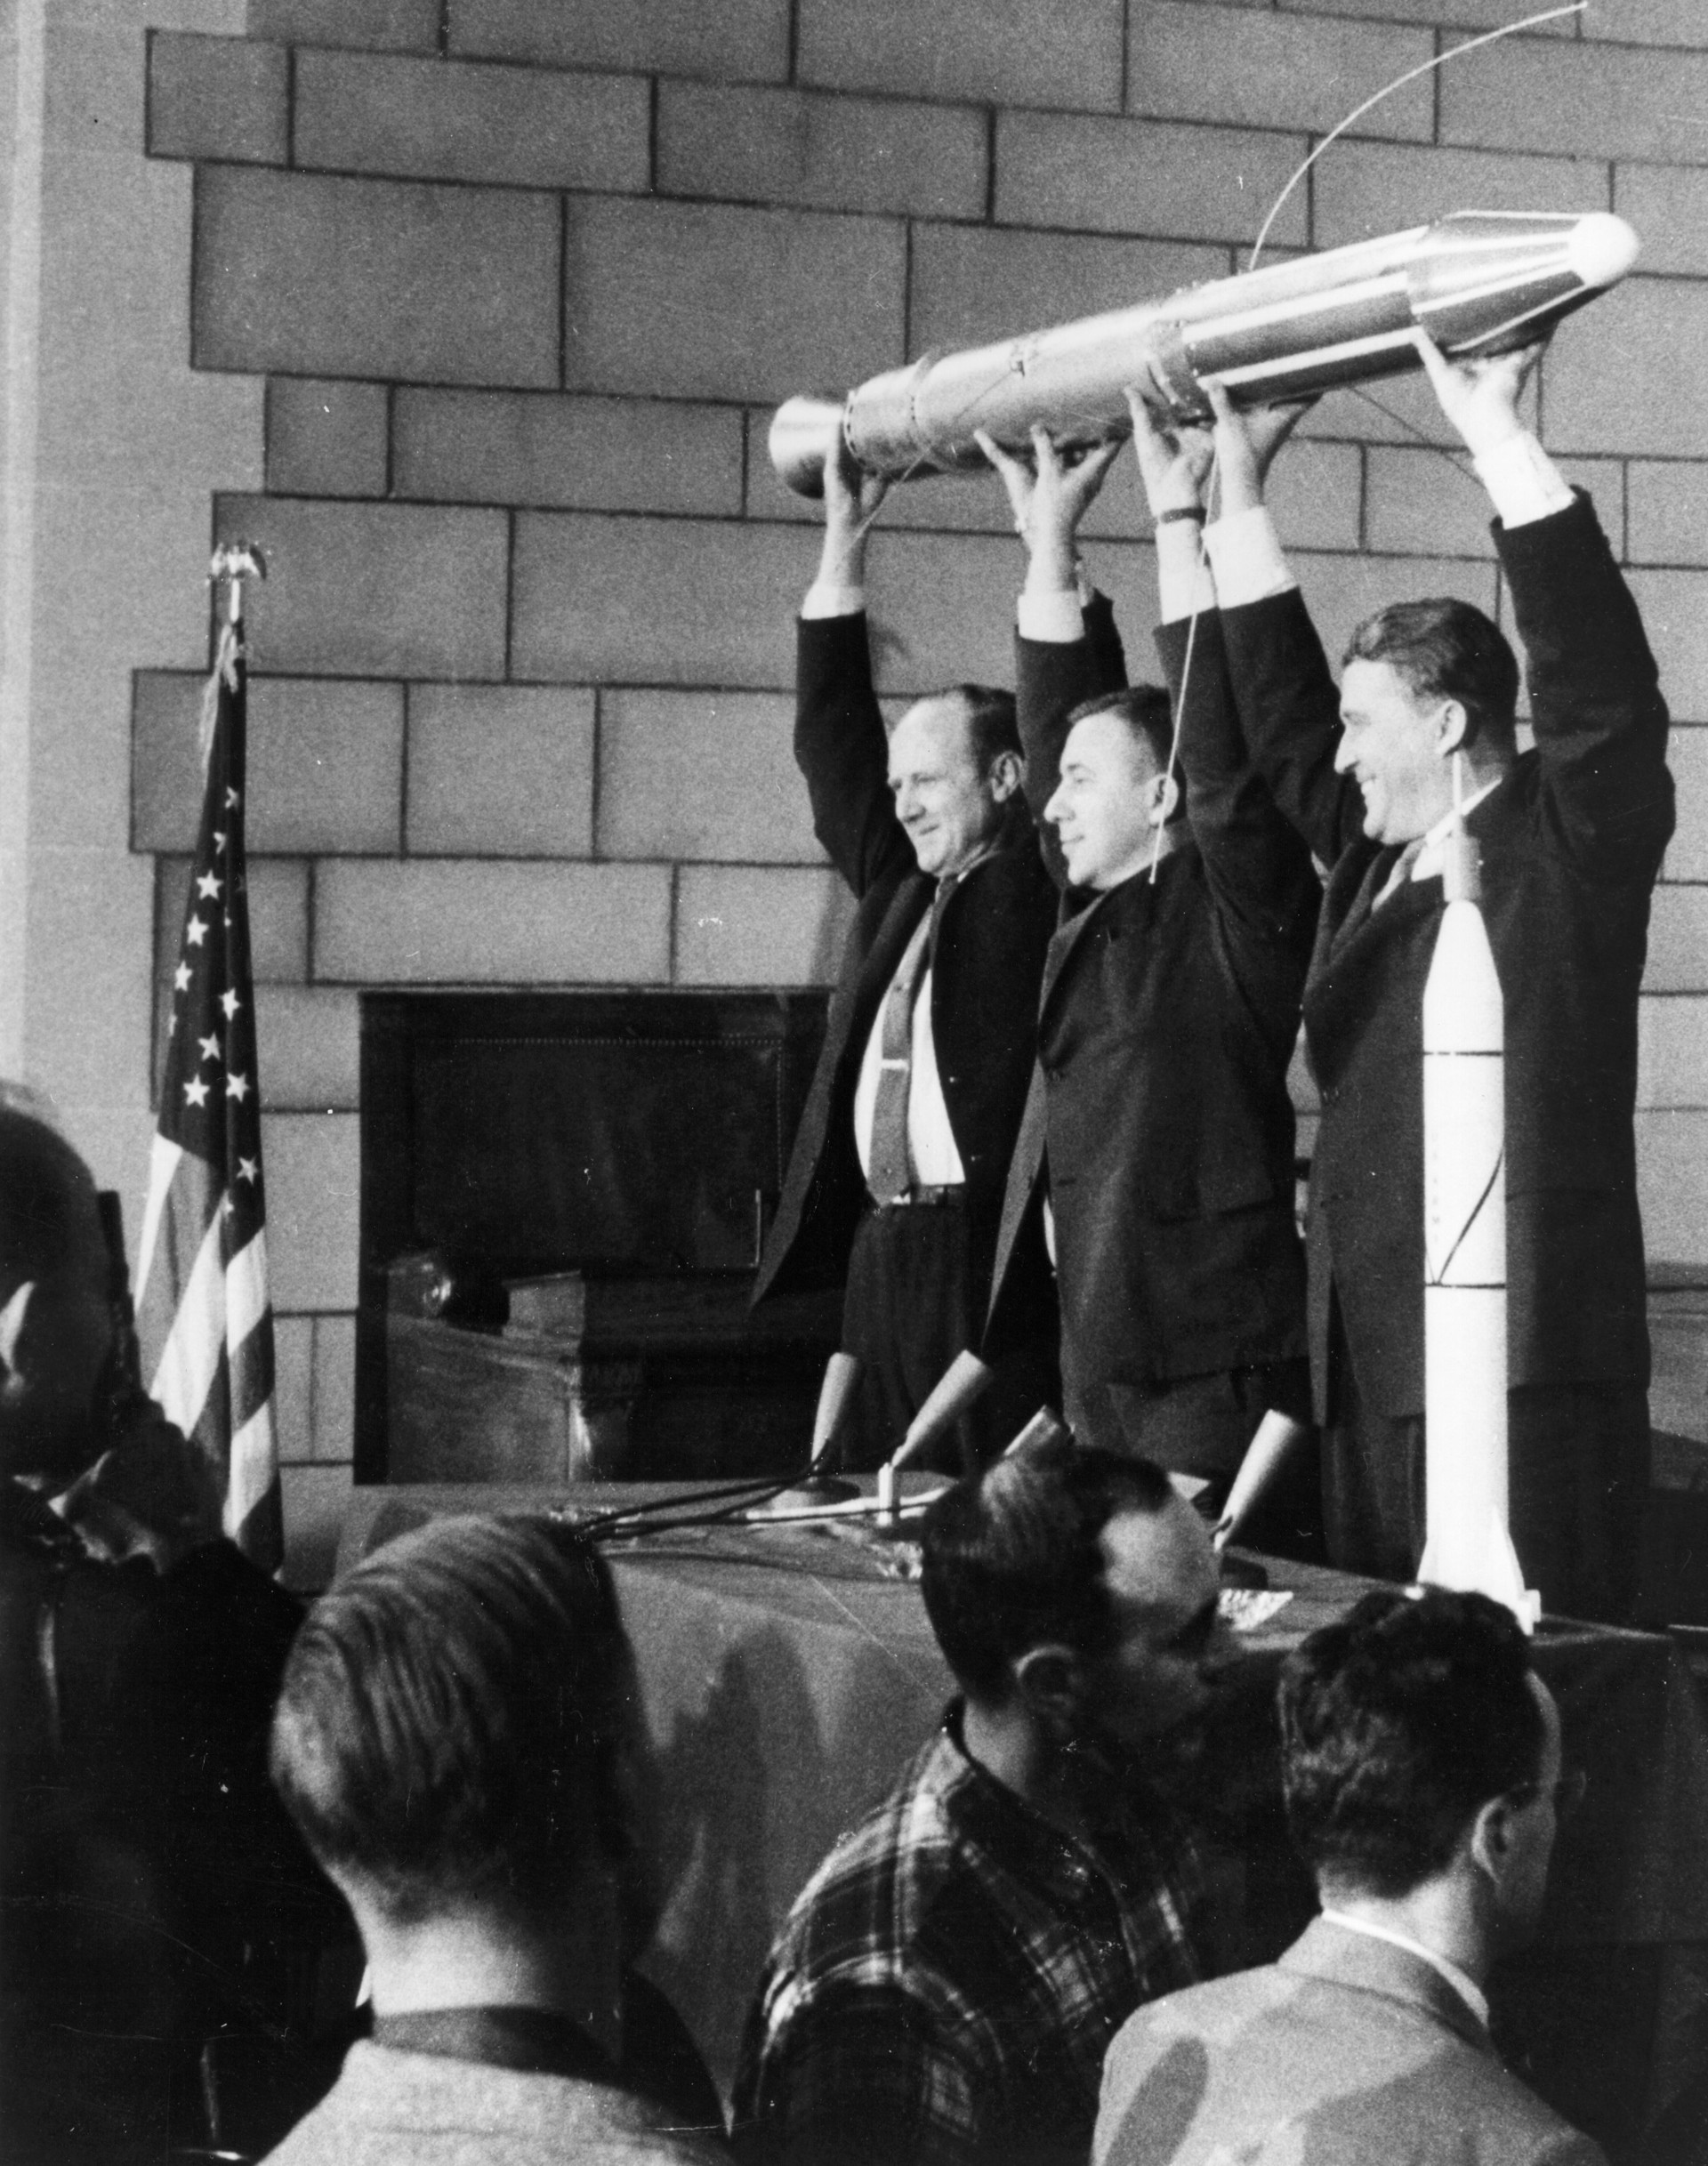 Im Gründungsjahr 1958 waren diese drei Männer für den erfolgreichen Start des ersten NASA-Satelliten ins All verantwortlich: William H. Pickering, James Van Allen and Wernher von Braun.